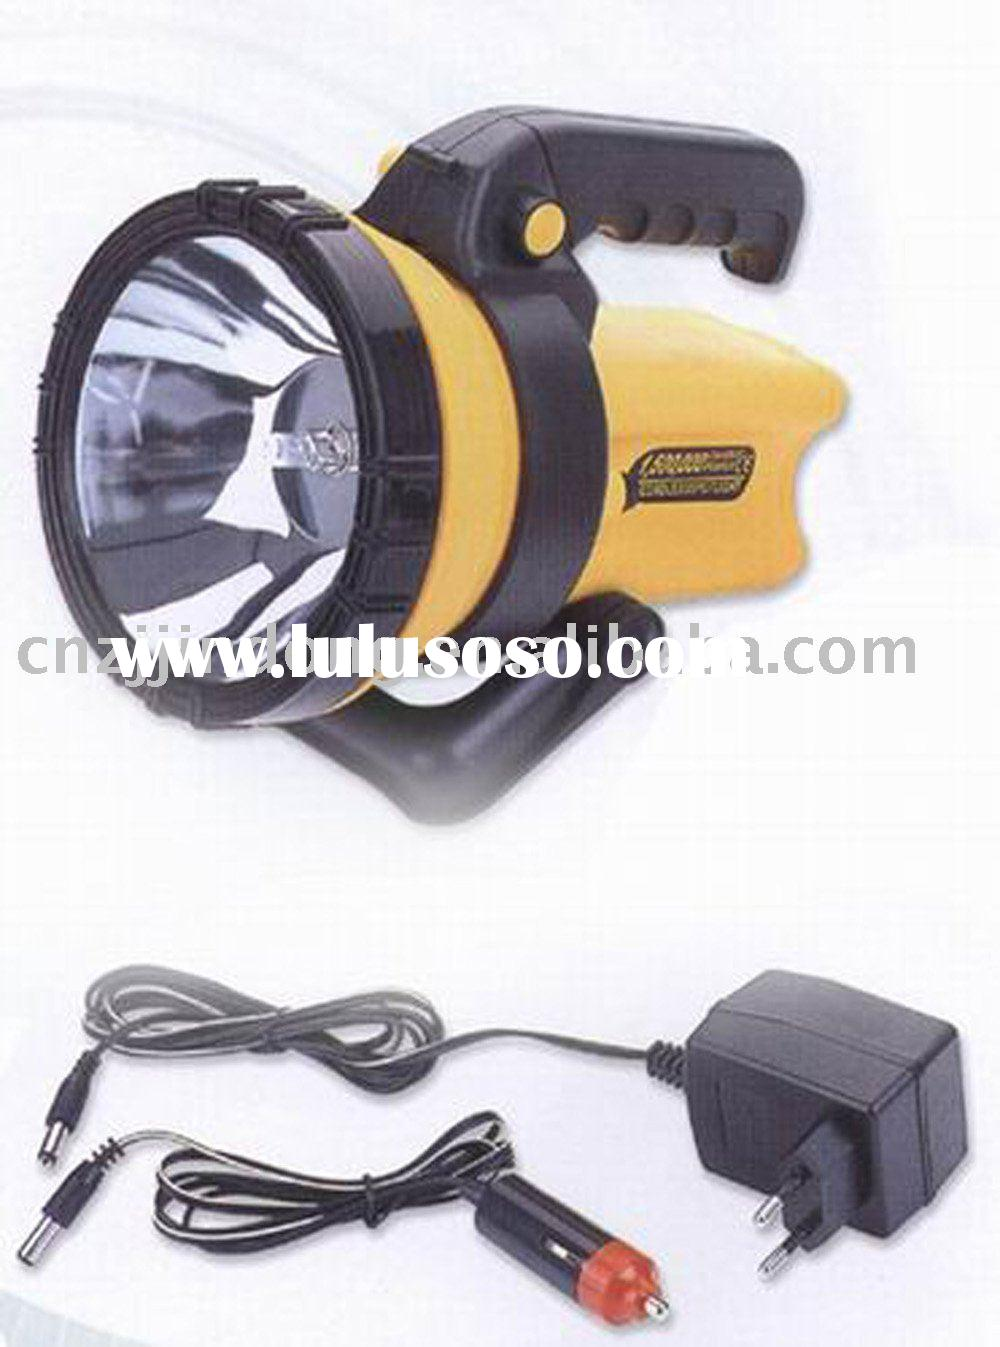 0.5mcp rechargeable spotlight